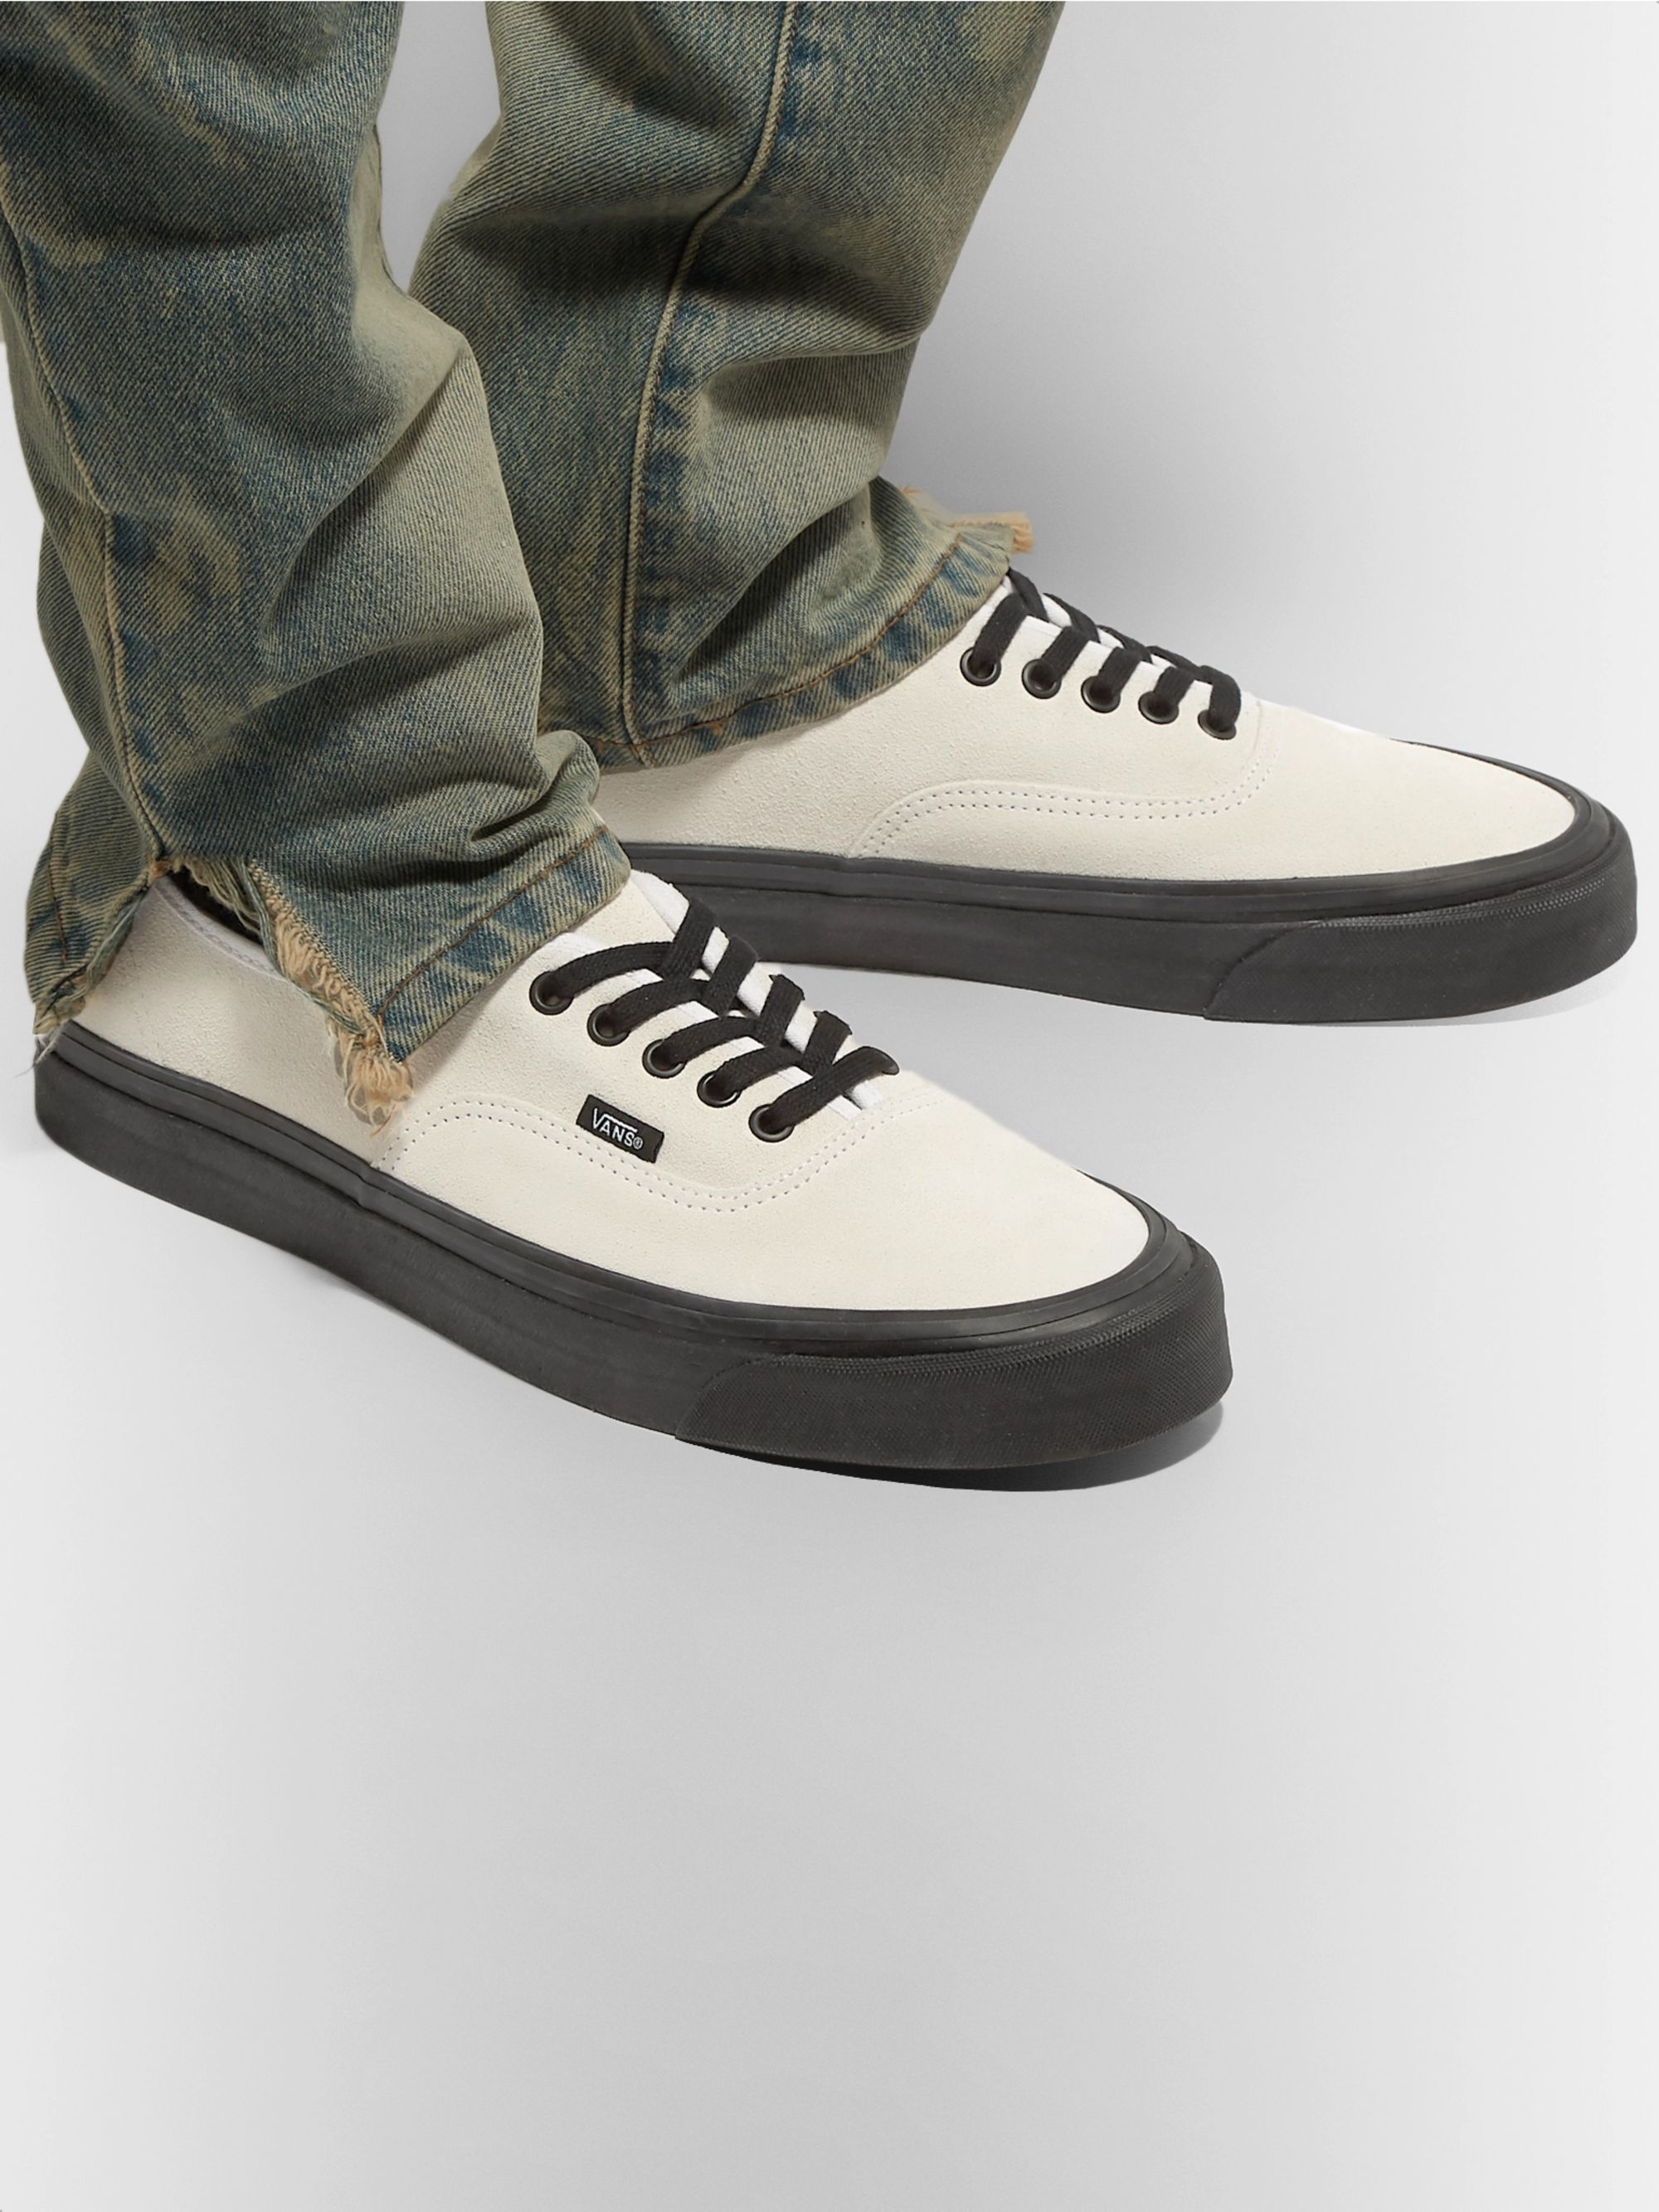 And White Checkerboard Authentic Sneakers